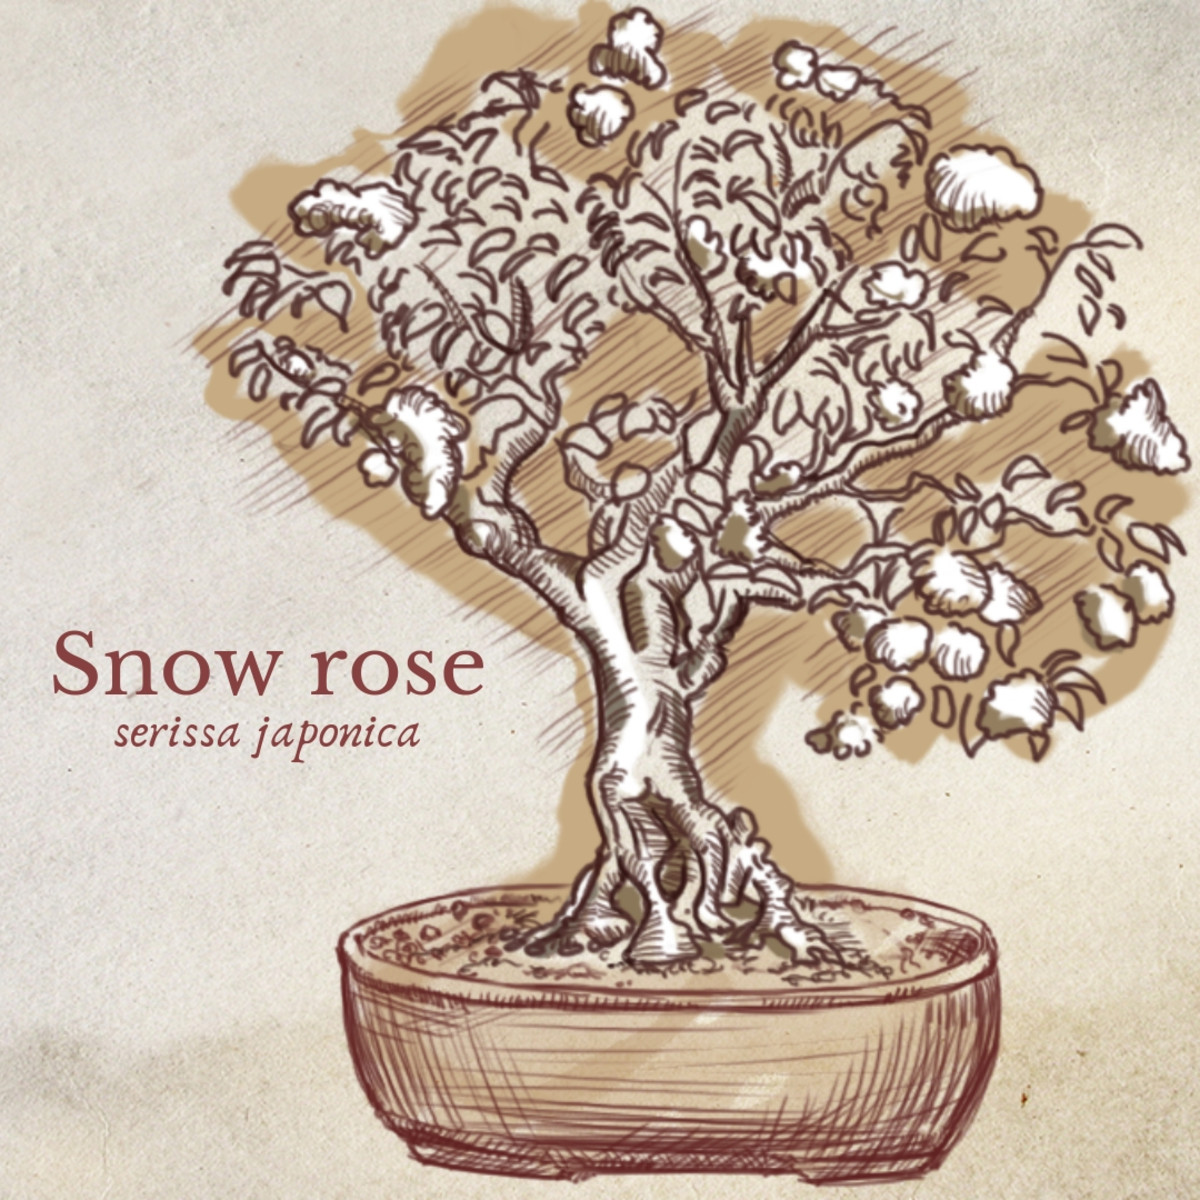 Illustration of Snow Rose